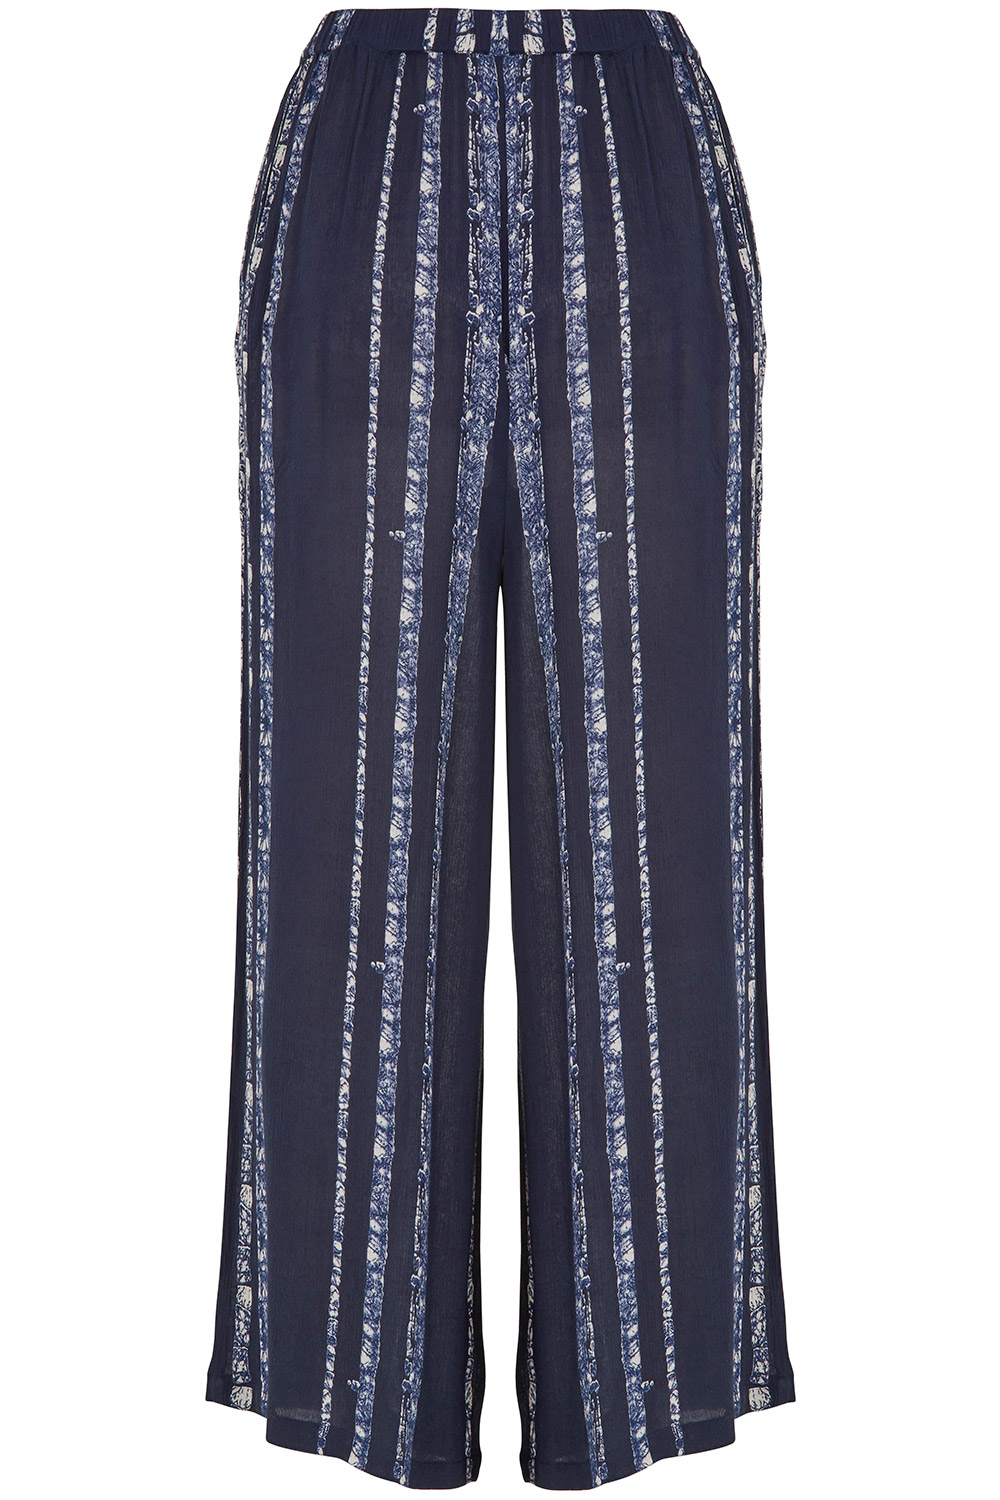 Printed Trousers Super versatile and easily dressed up or down, shop our offering of the latest on-trend printed and patterned trousers for the new season. Opt for printed trousers in current side split styles, or step up your off duty styling with statement joggers for loungewear and beyond.